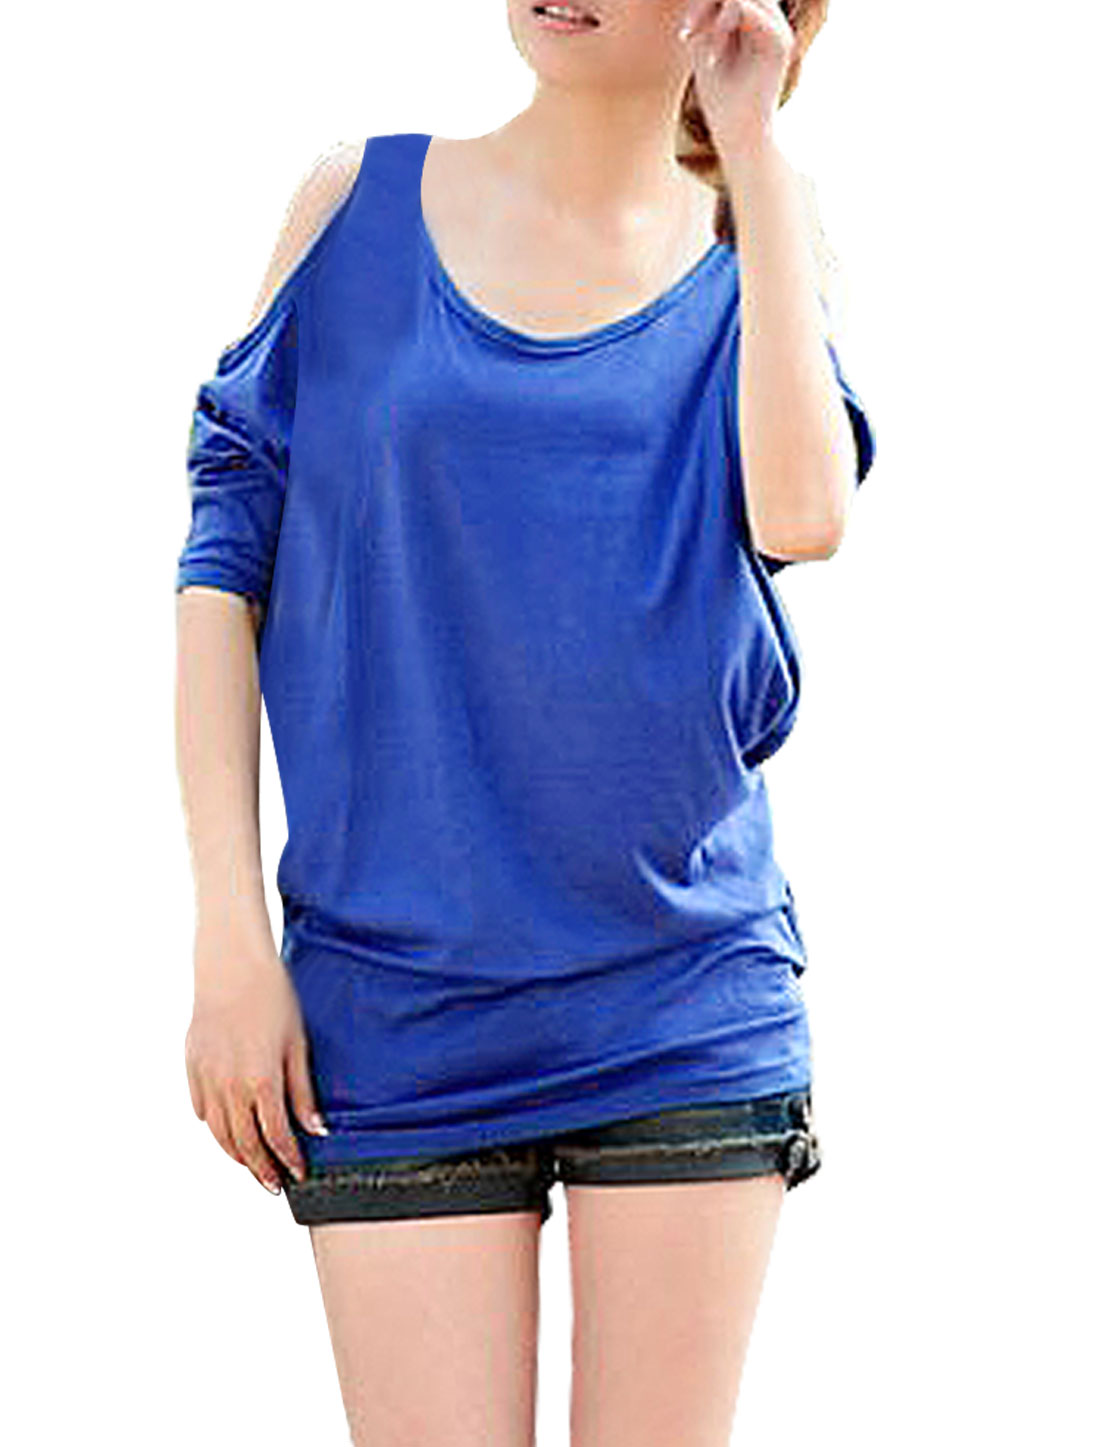 Lady Blue Scoop Neck Dolman Sleeve Cut Out Shoulder Loose Top Shirt XS